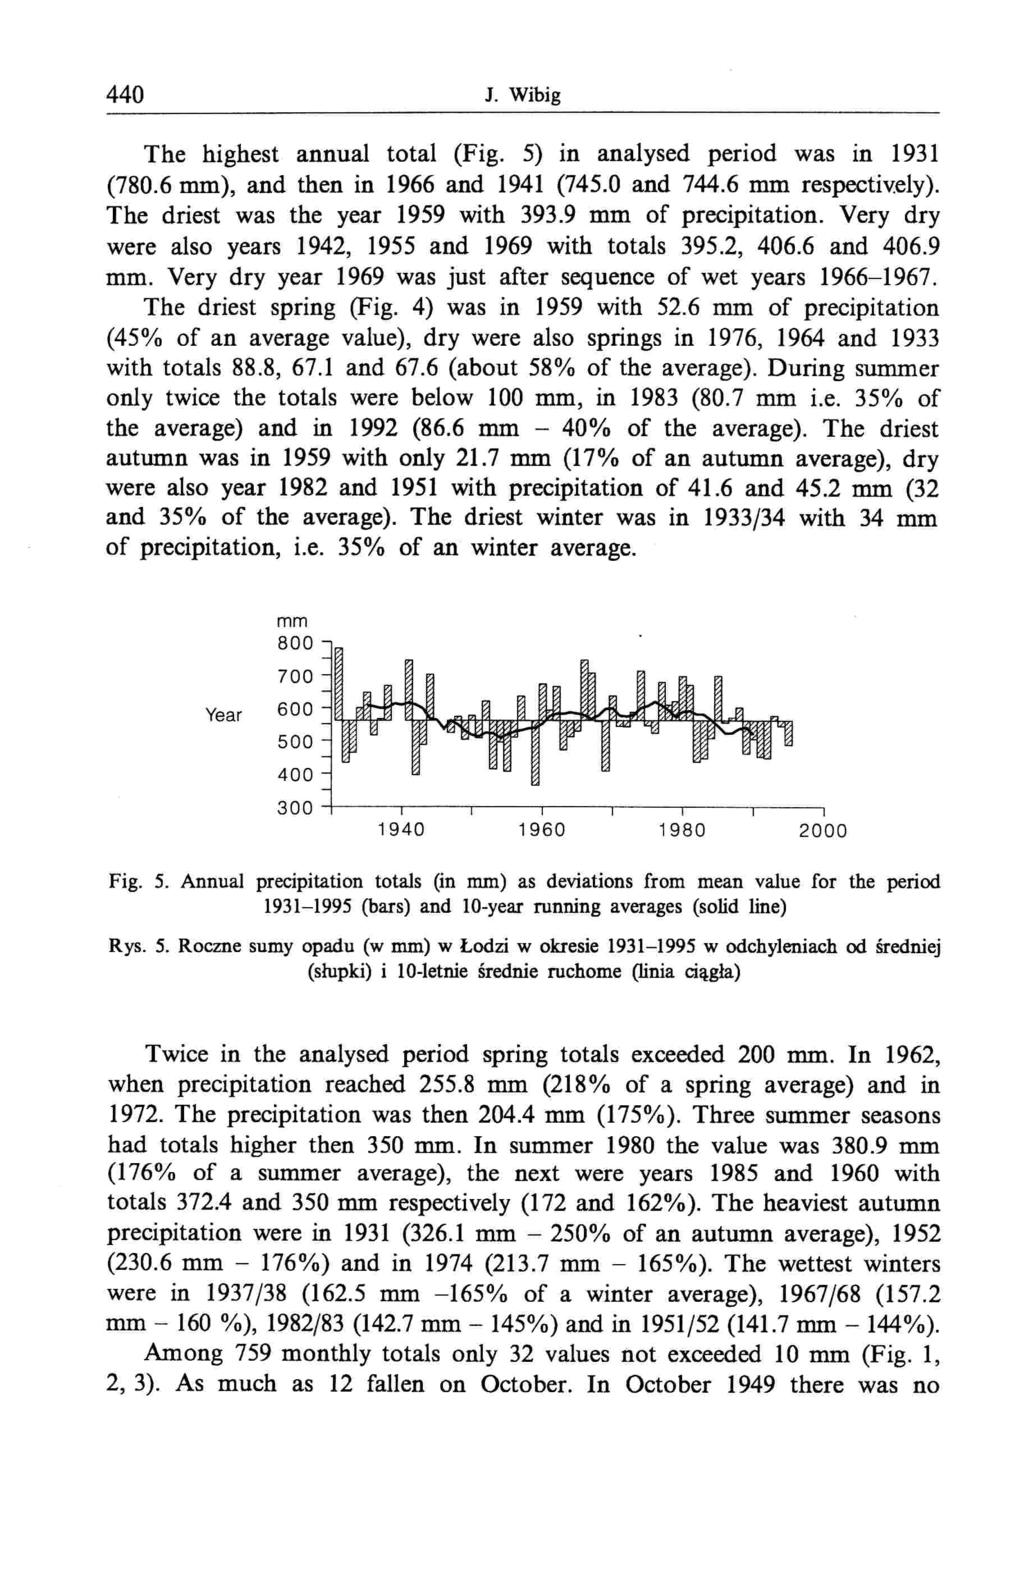 440 J. Wibig The highest annual total (Fig. 5) in analysed period was in 1931 (7.6 ), and then in 1966 and 1941 (745.0 and 744.6 respectiv.ely). The driest was the year 1959 with 393.